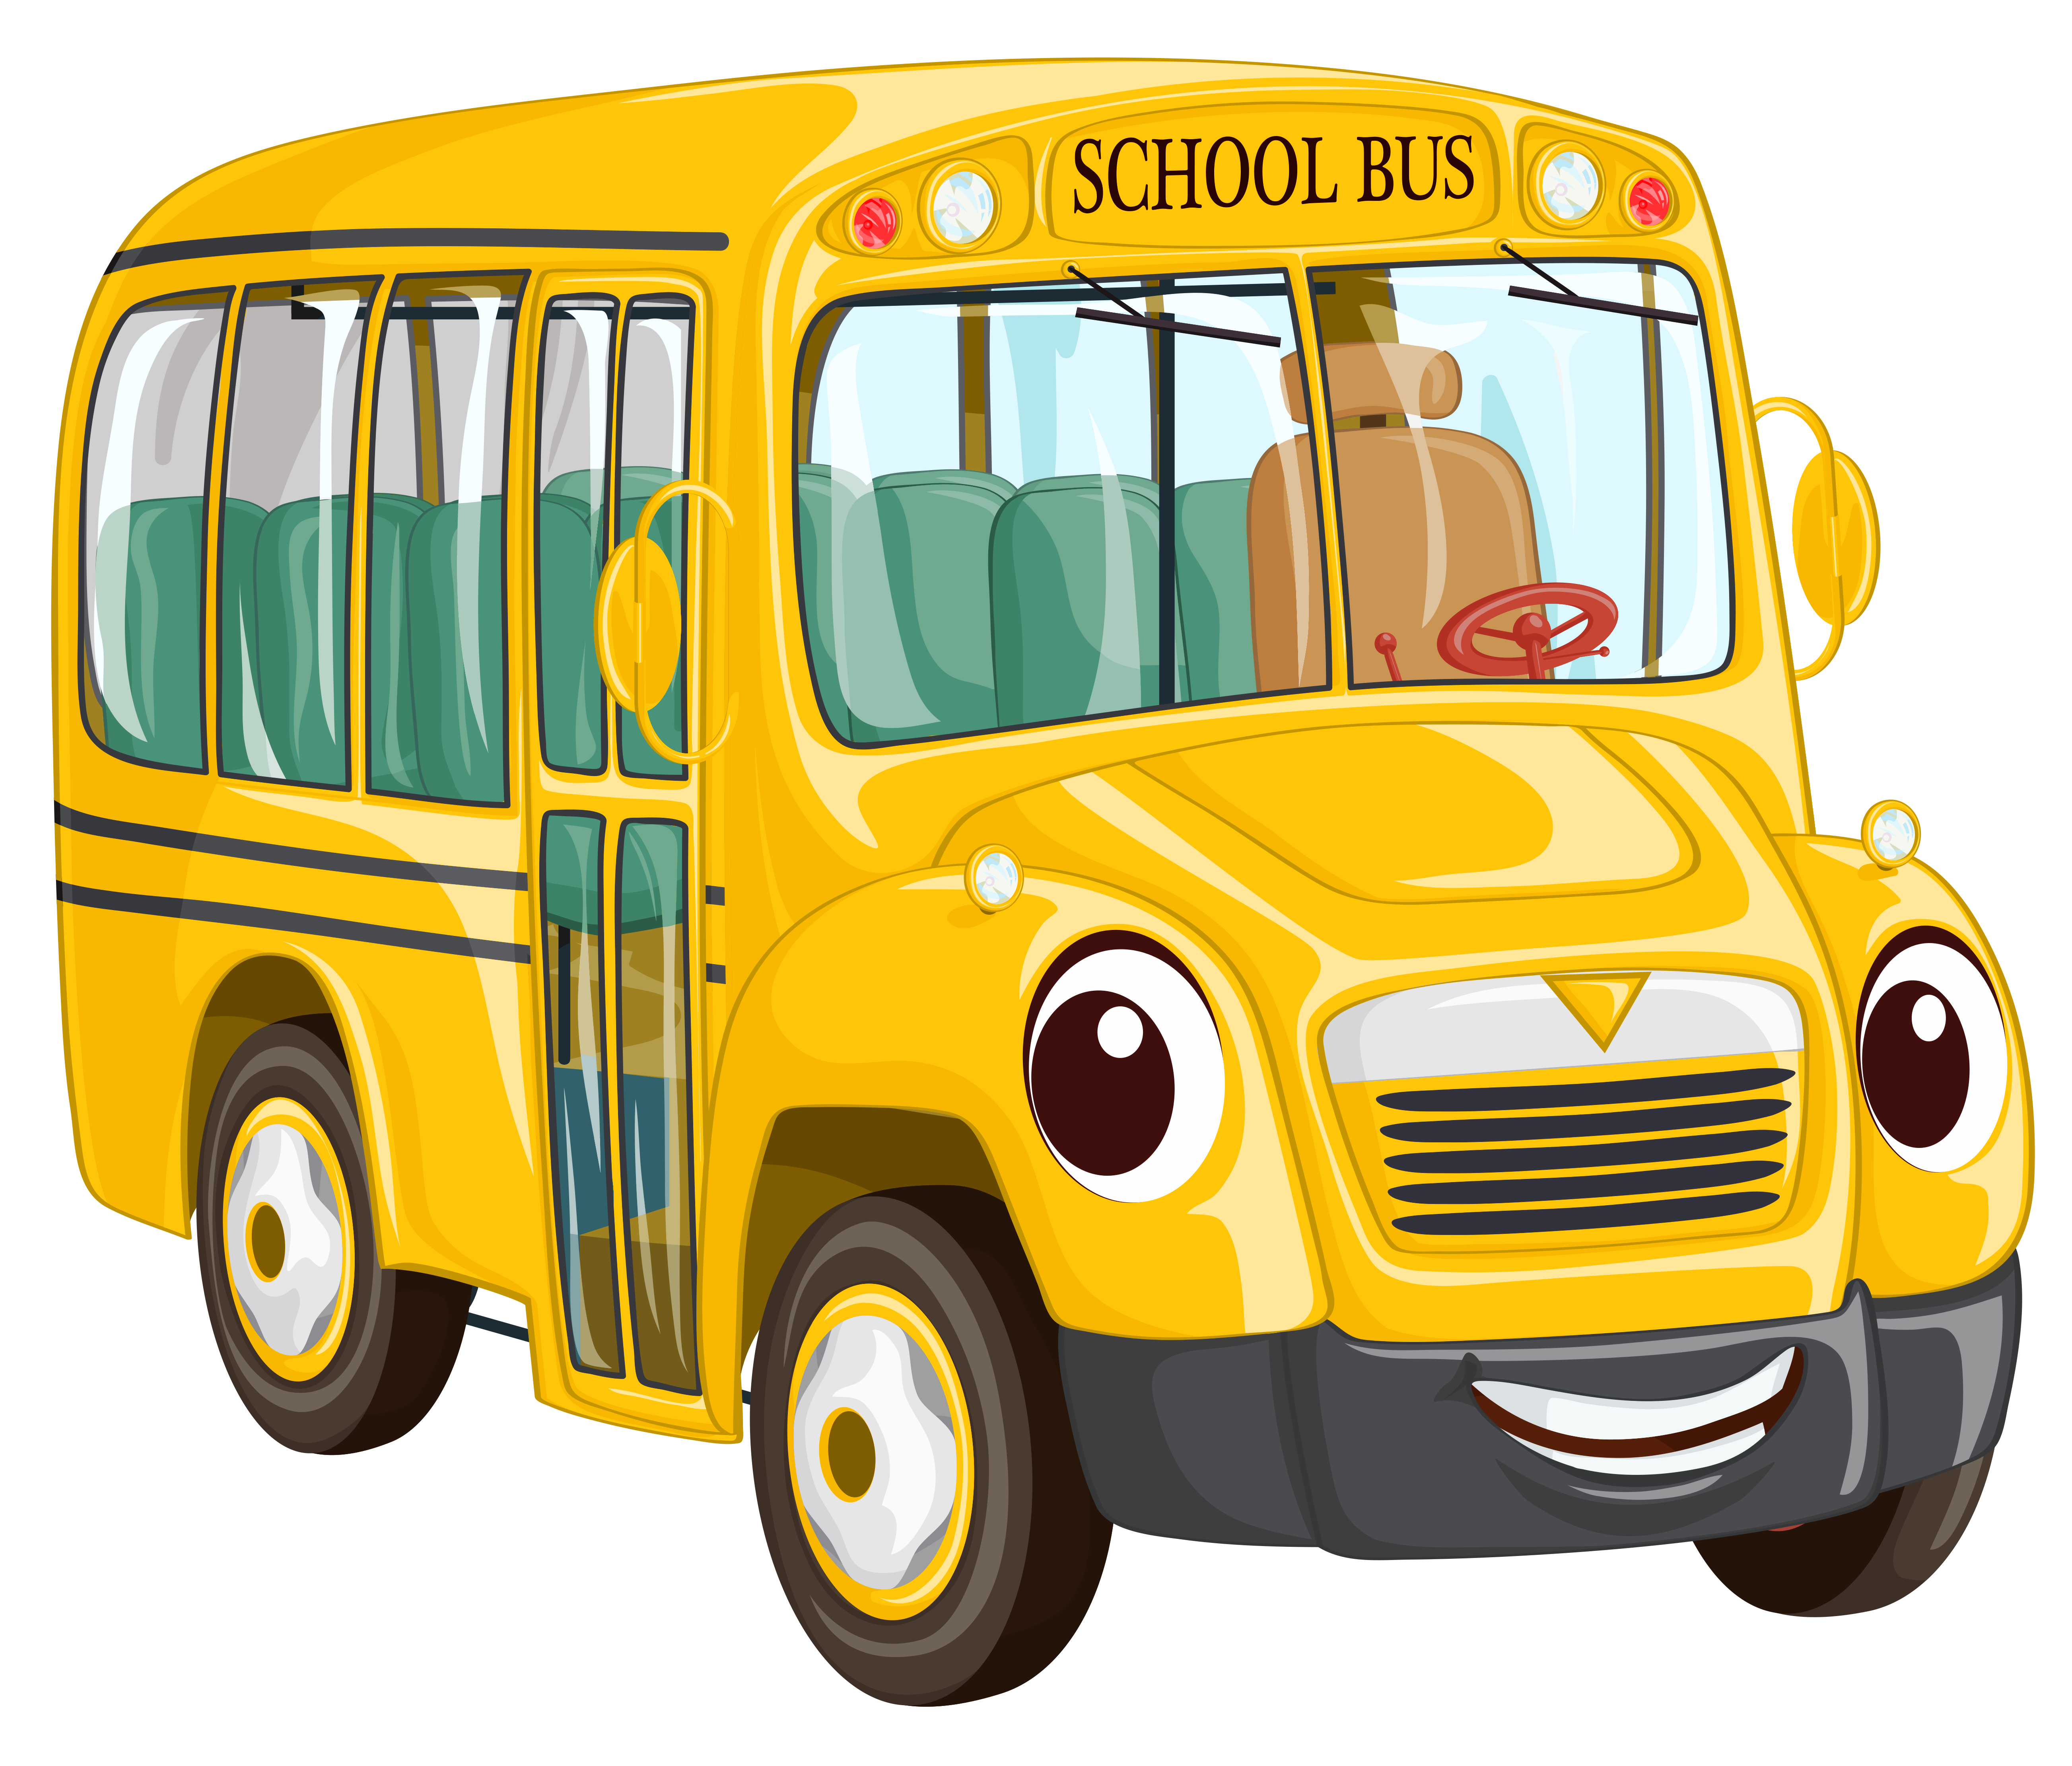 School van clipart svg freeuse 28+ Collection of Bus Clipart Png | High quality, free cliparts ... svg freeuse